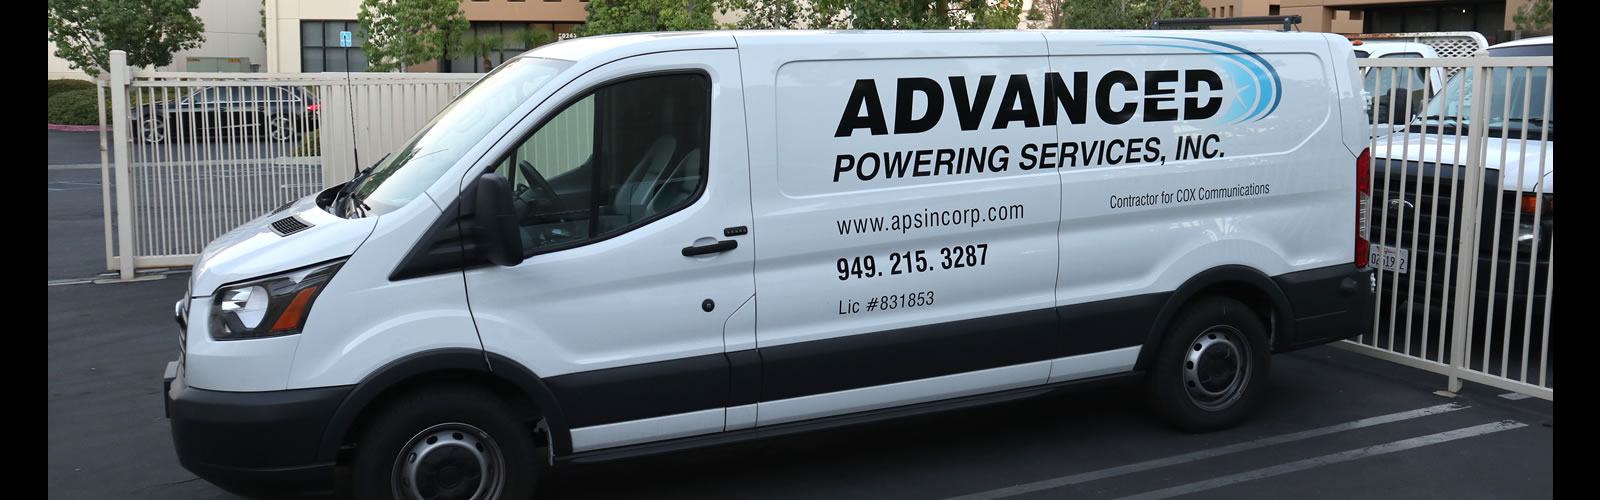 Advanced Powering Services